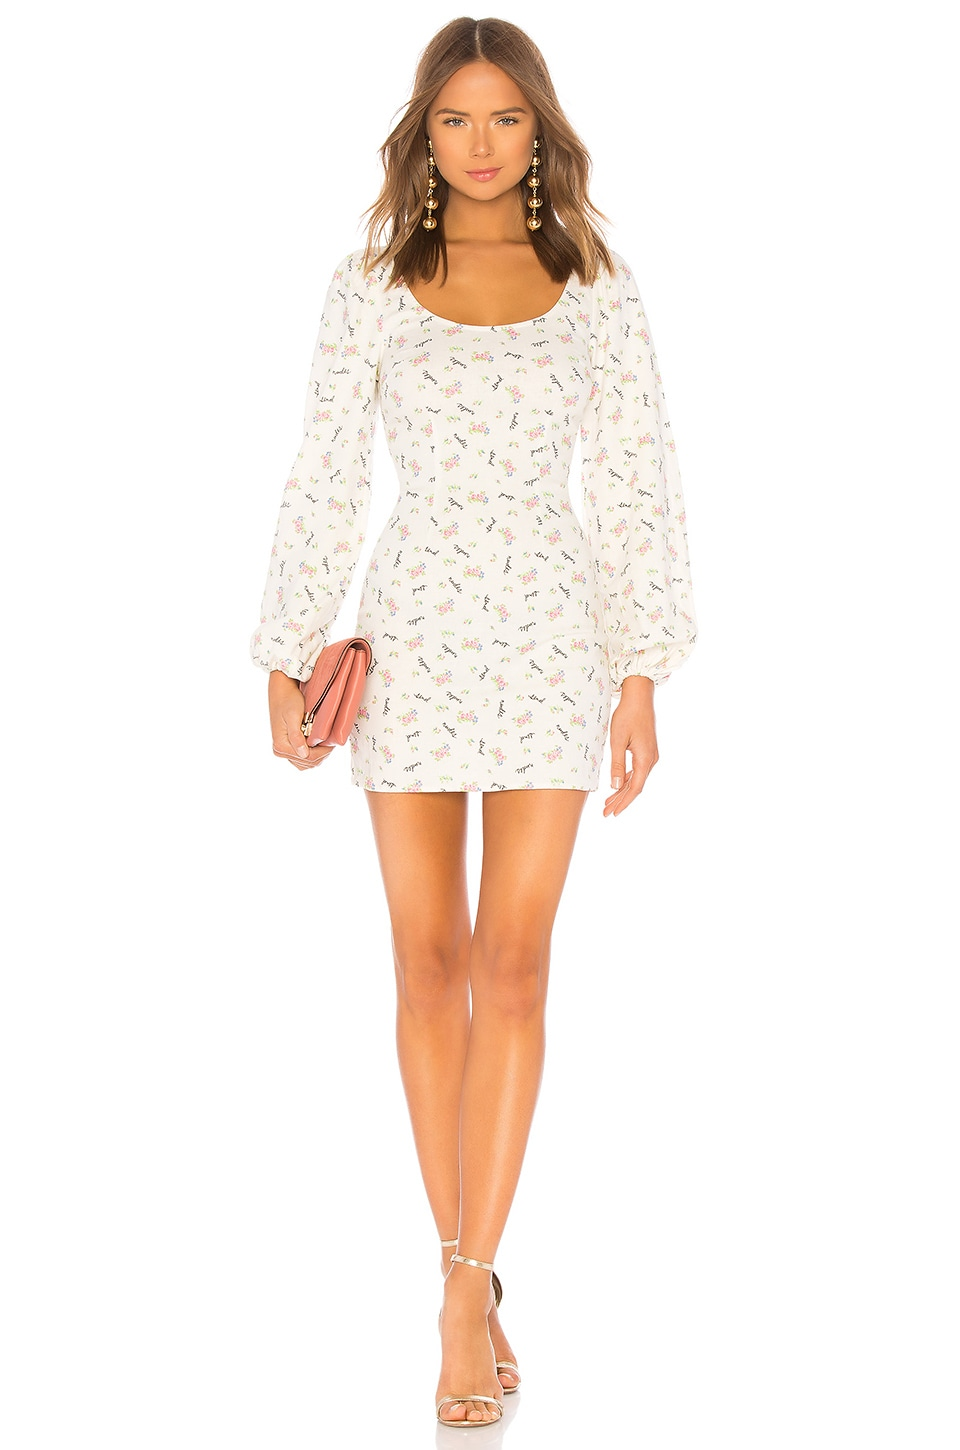 Lpa Puff Sleeve Mini Dress In Send Nudes Floral Revolve Likely charlotte dress in black. lpa